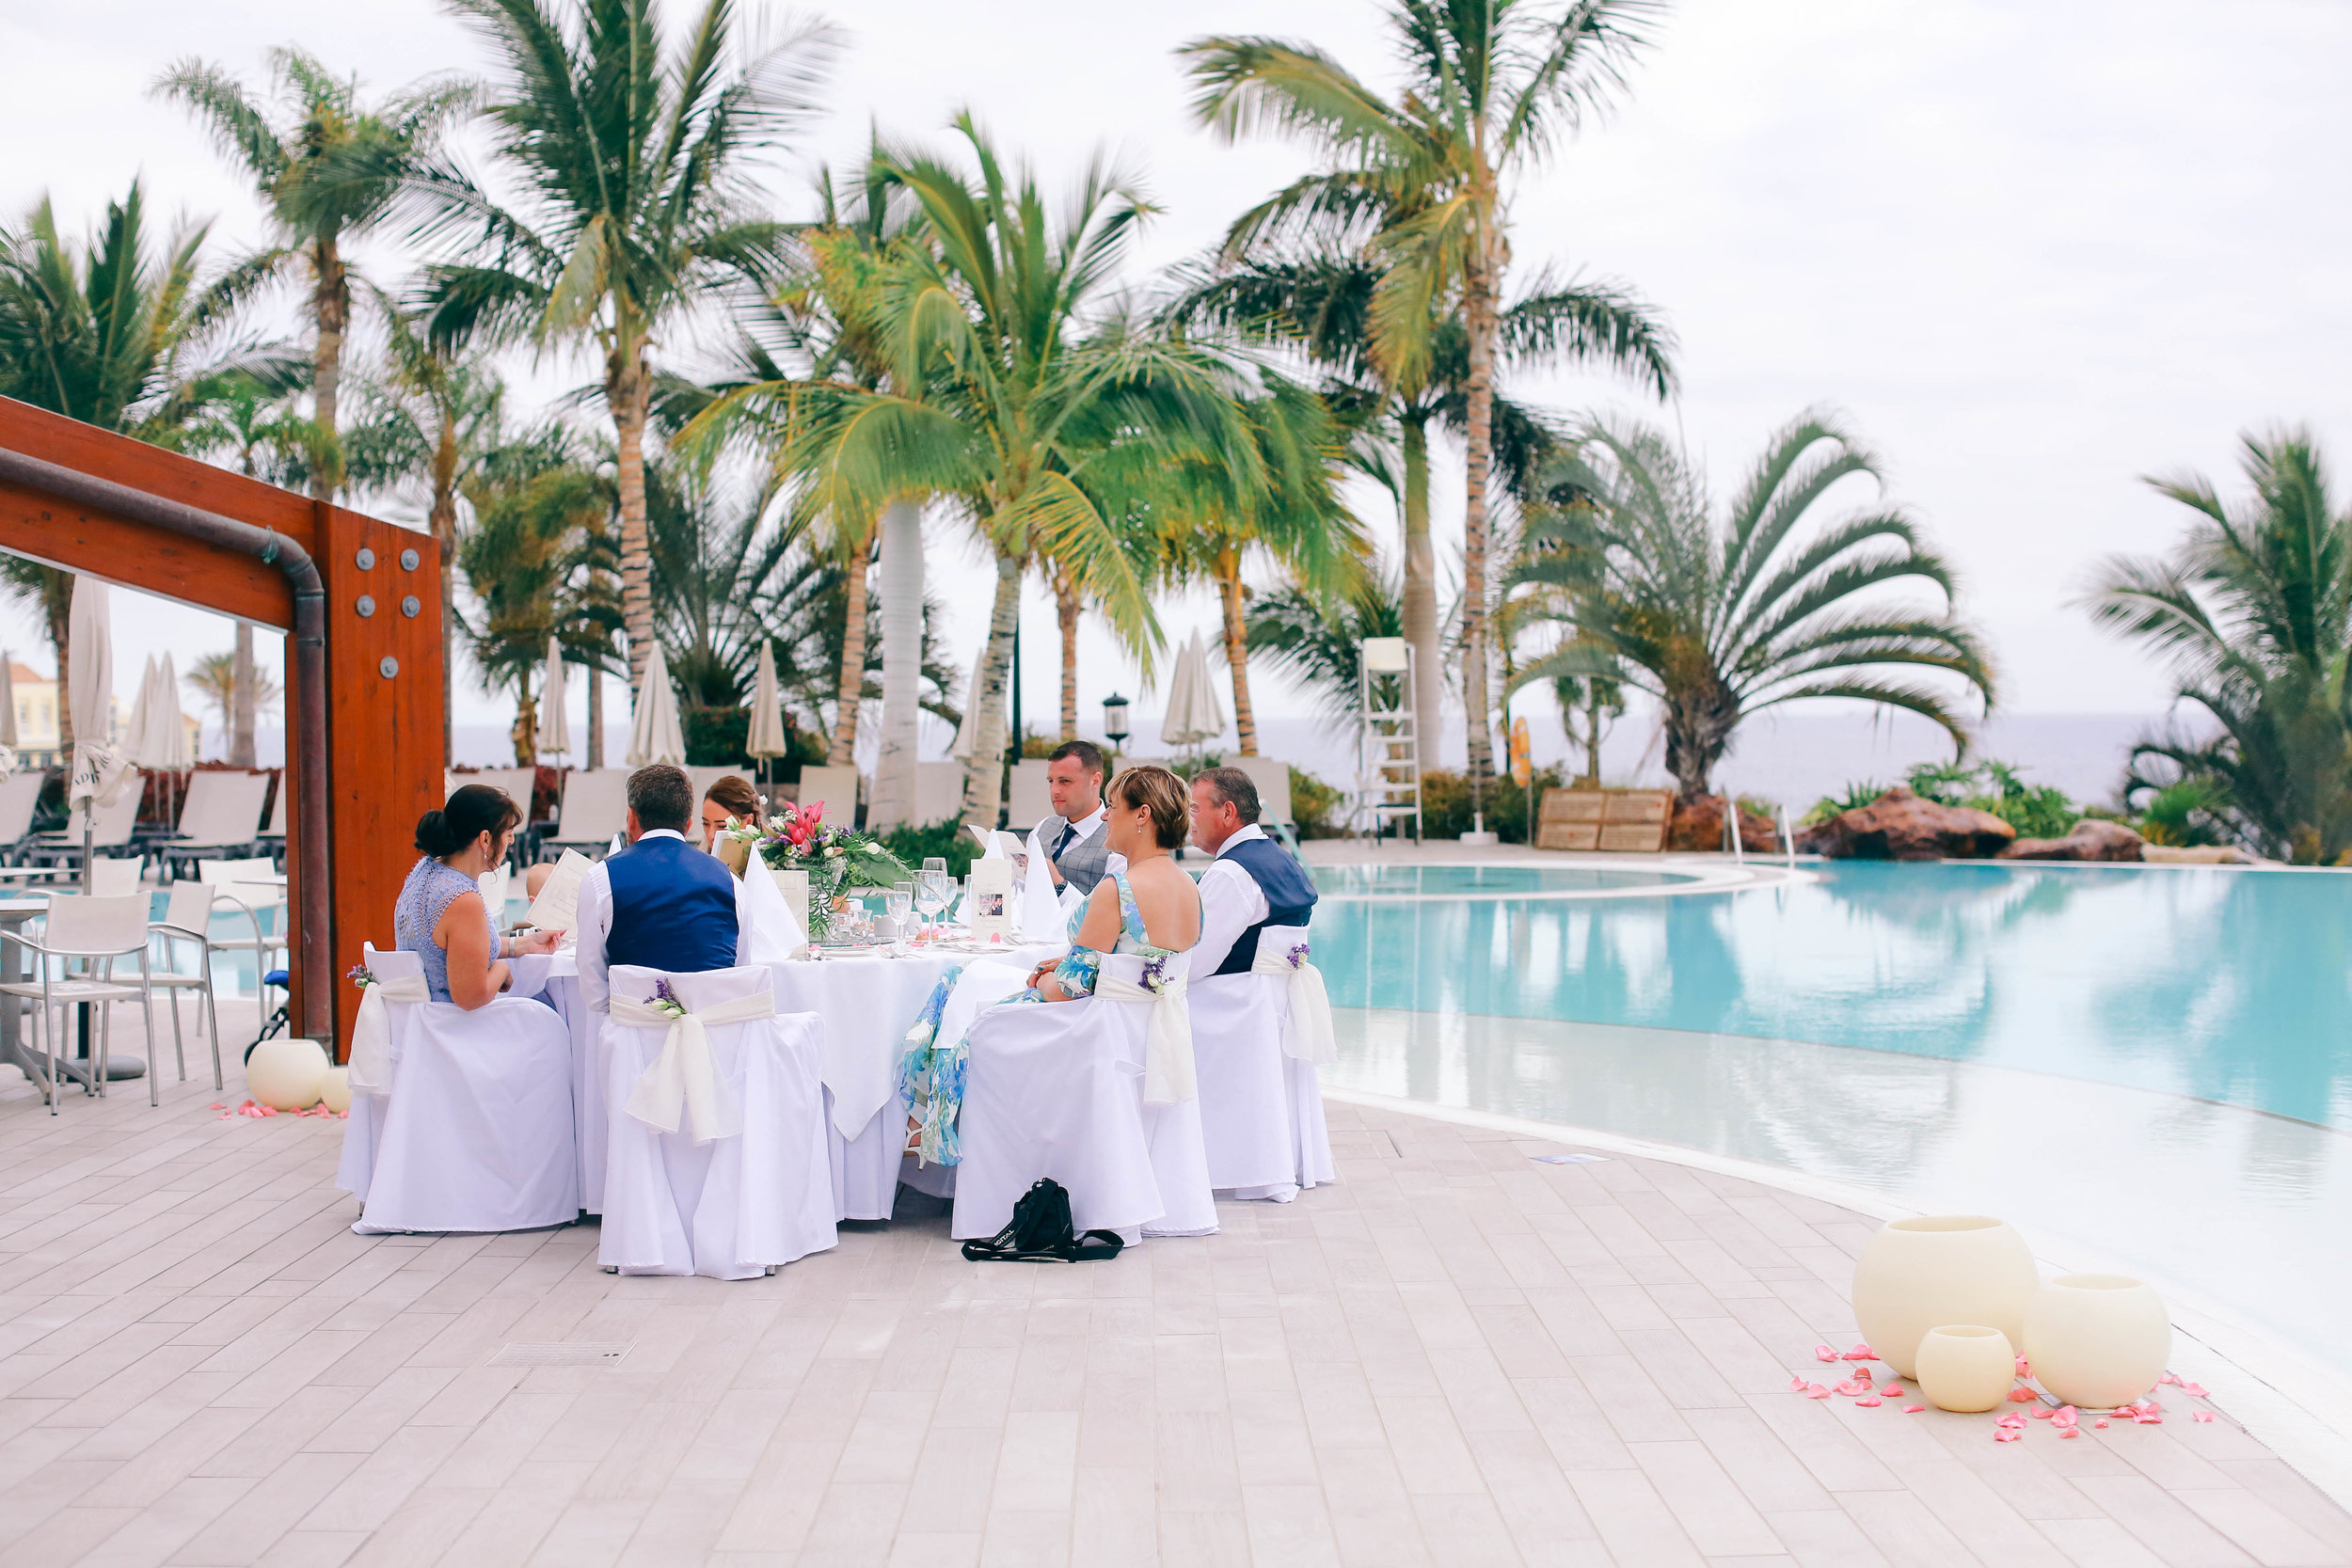 Small wedding dinner set up by the pools